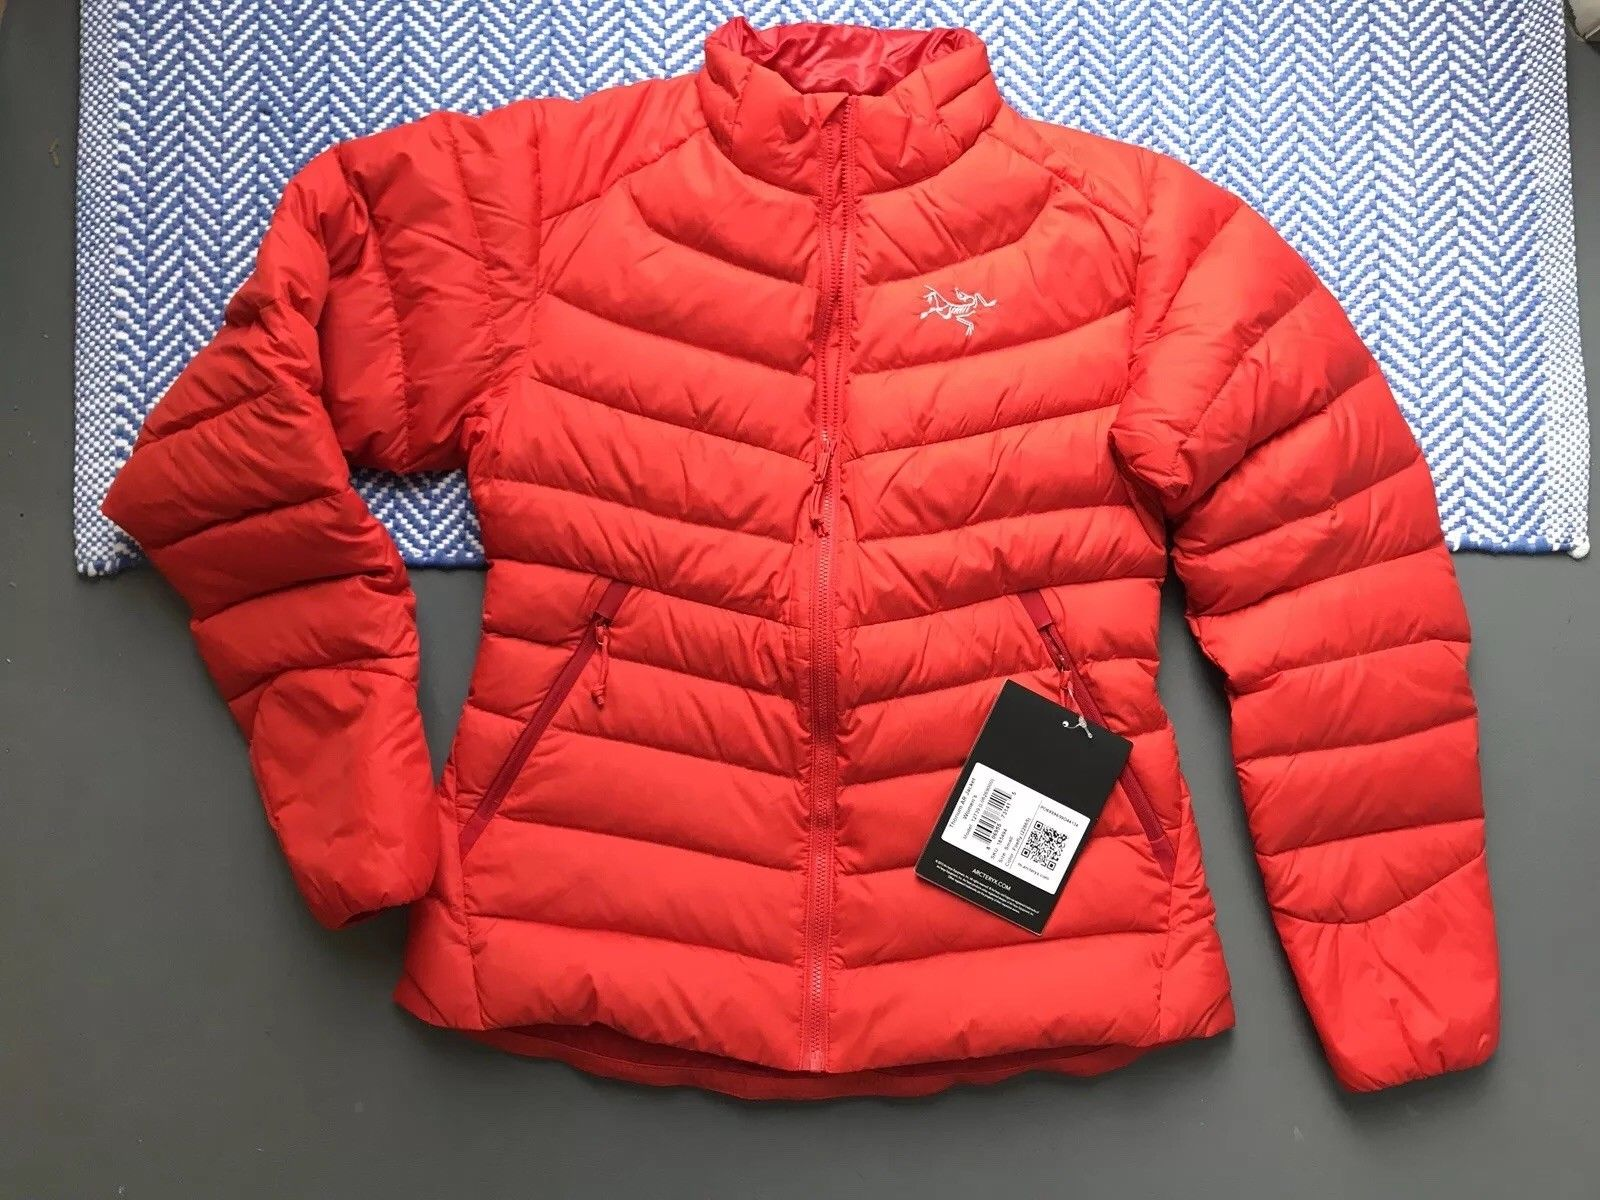 Spot Arcteryx Thorium AR Ancestral Bird Female Hatless Warm Down Garment 12739